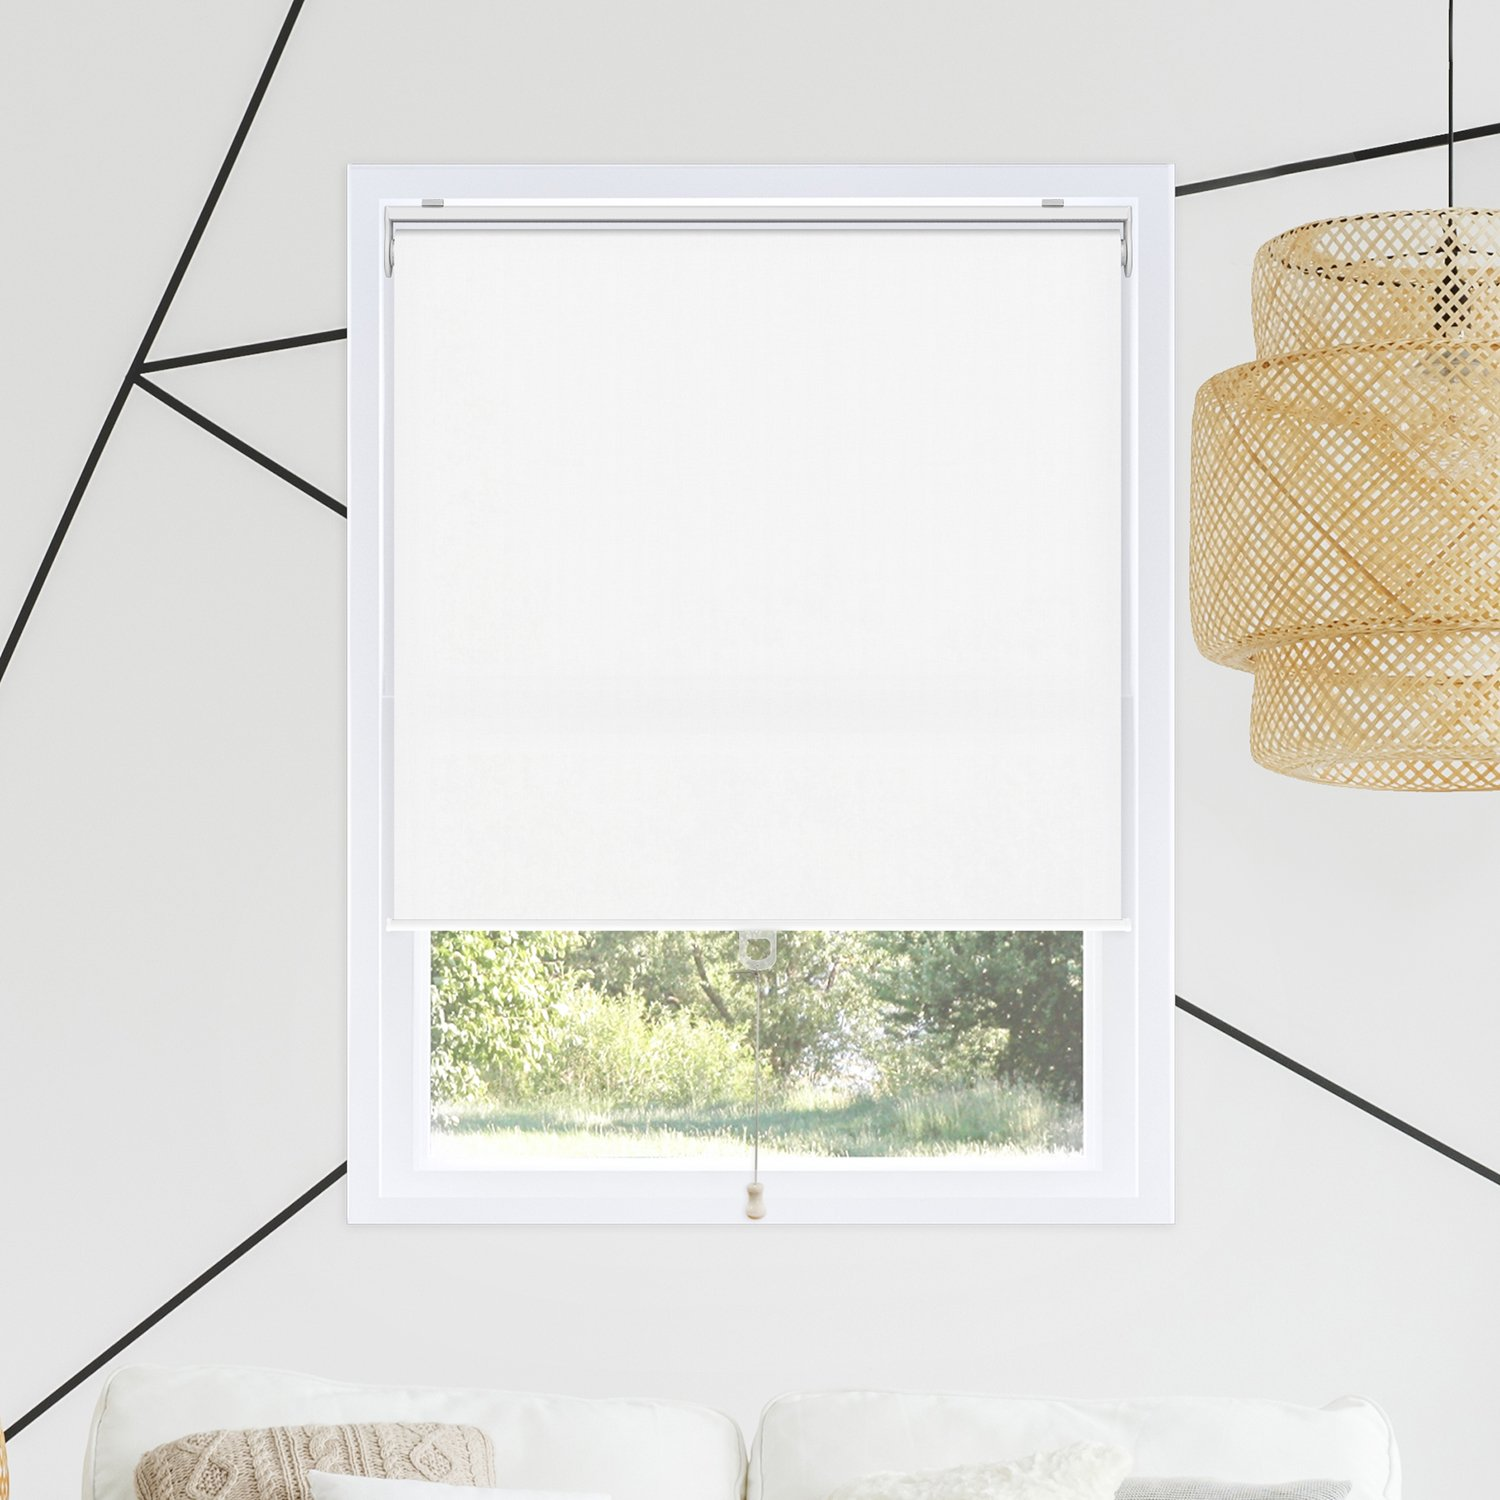 Chicology Cordless Roller Shades Snap-N'-Glide, Blackout Window Treatments Perfect for Living Room/Bedroom/Nursery/Office and More.Byssus White (Room Darkening), 35''W X 72''H by CHICOLOGY